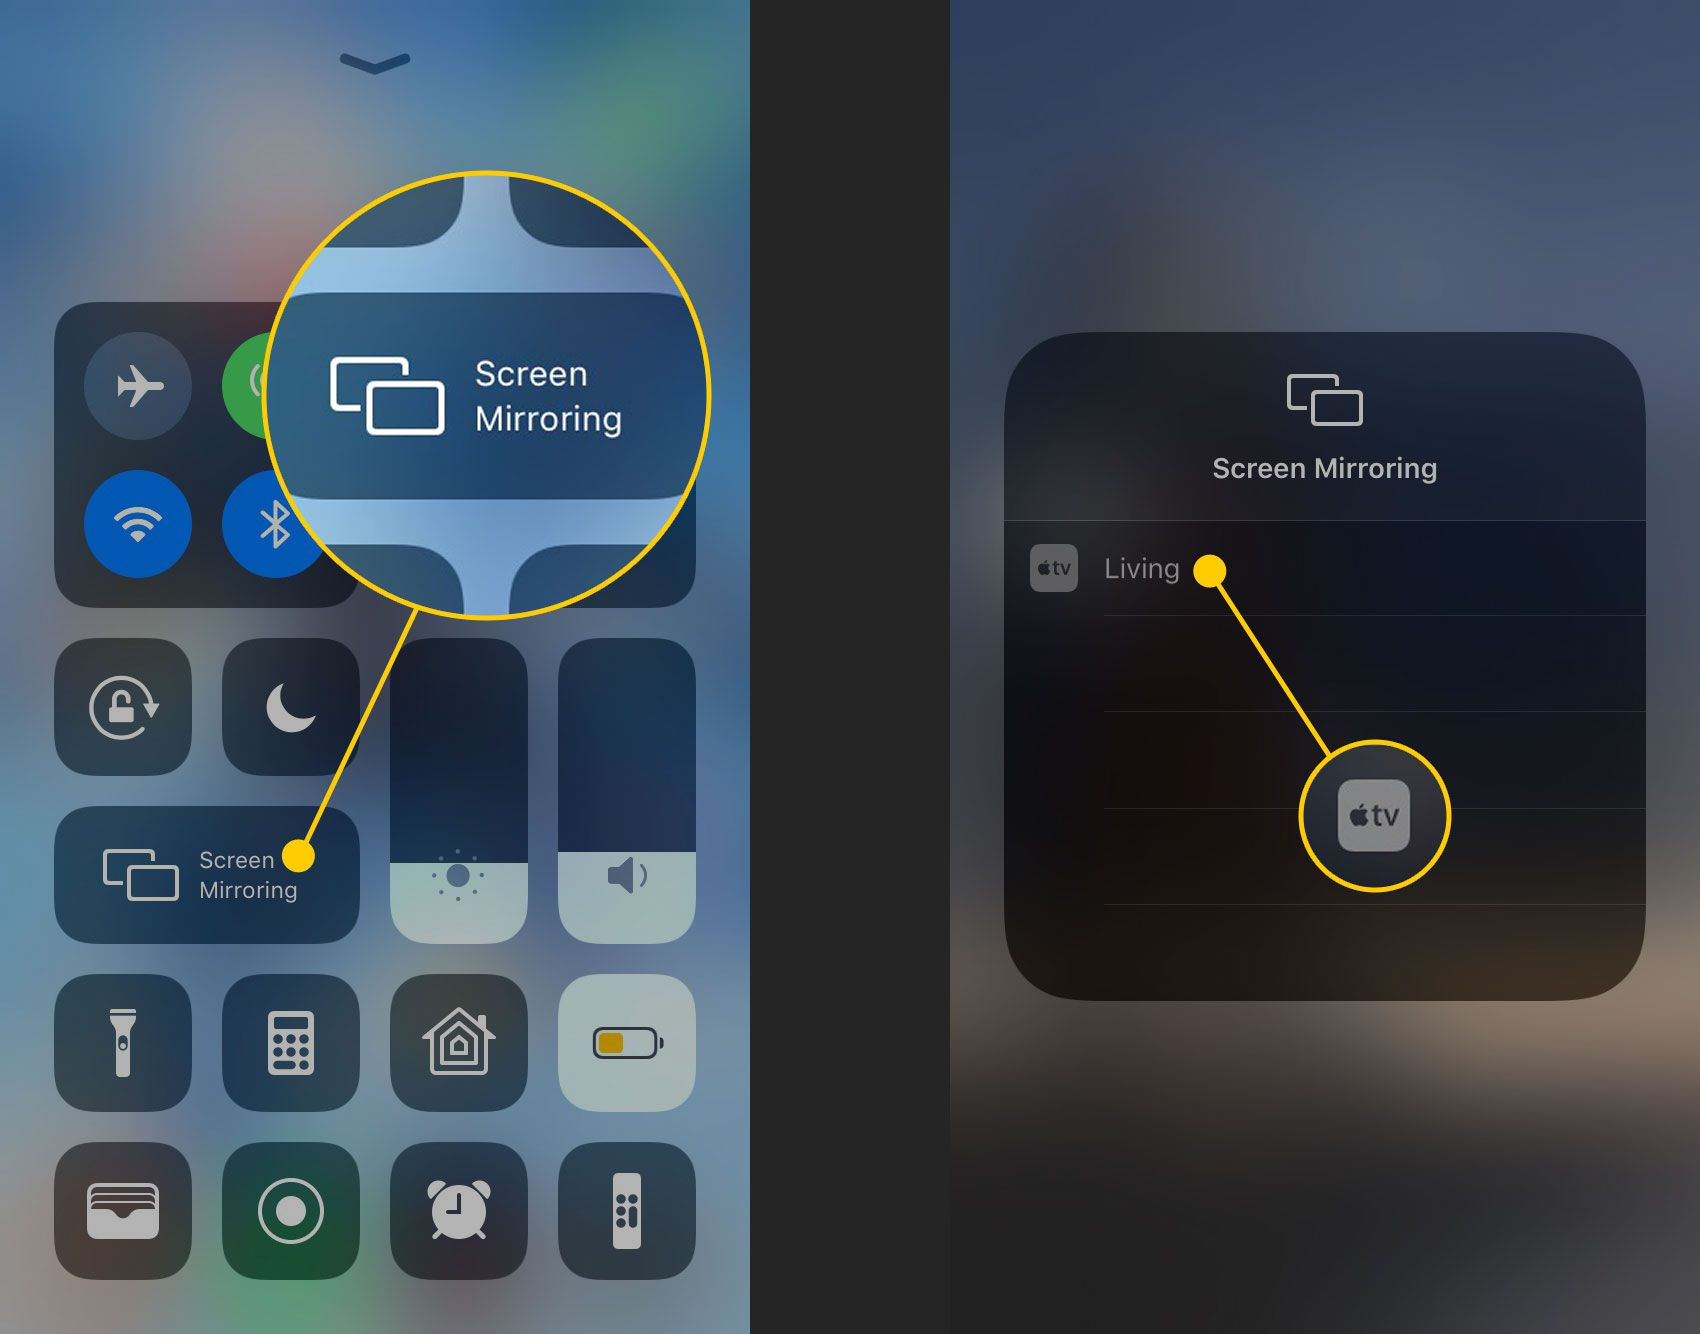 How to Enable AirPlay for iPhone